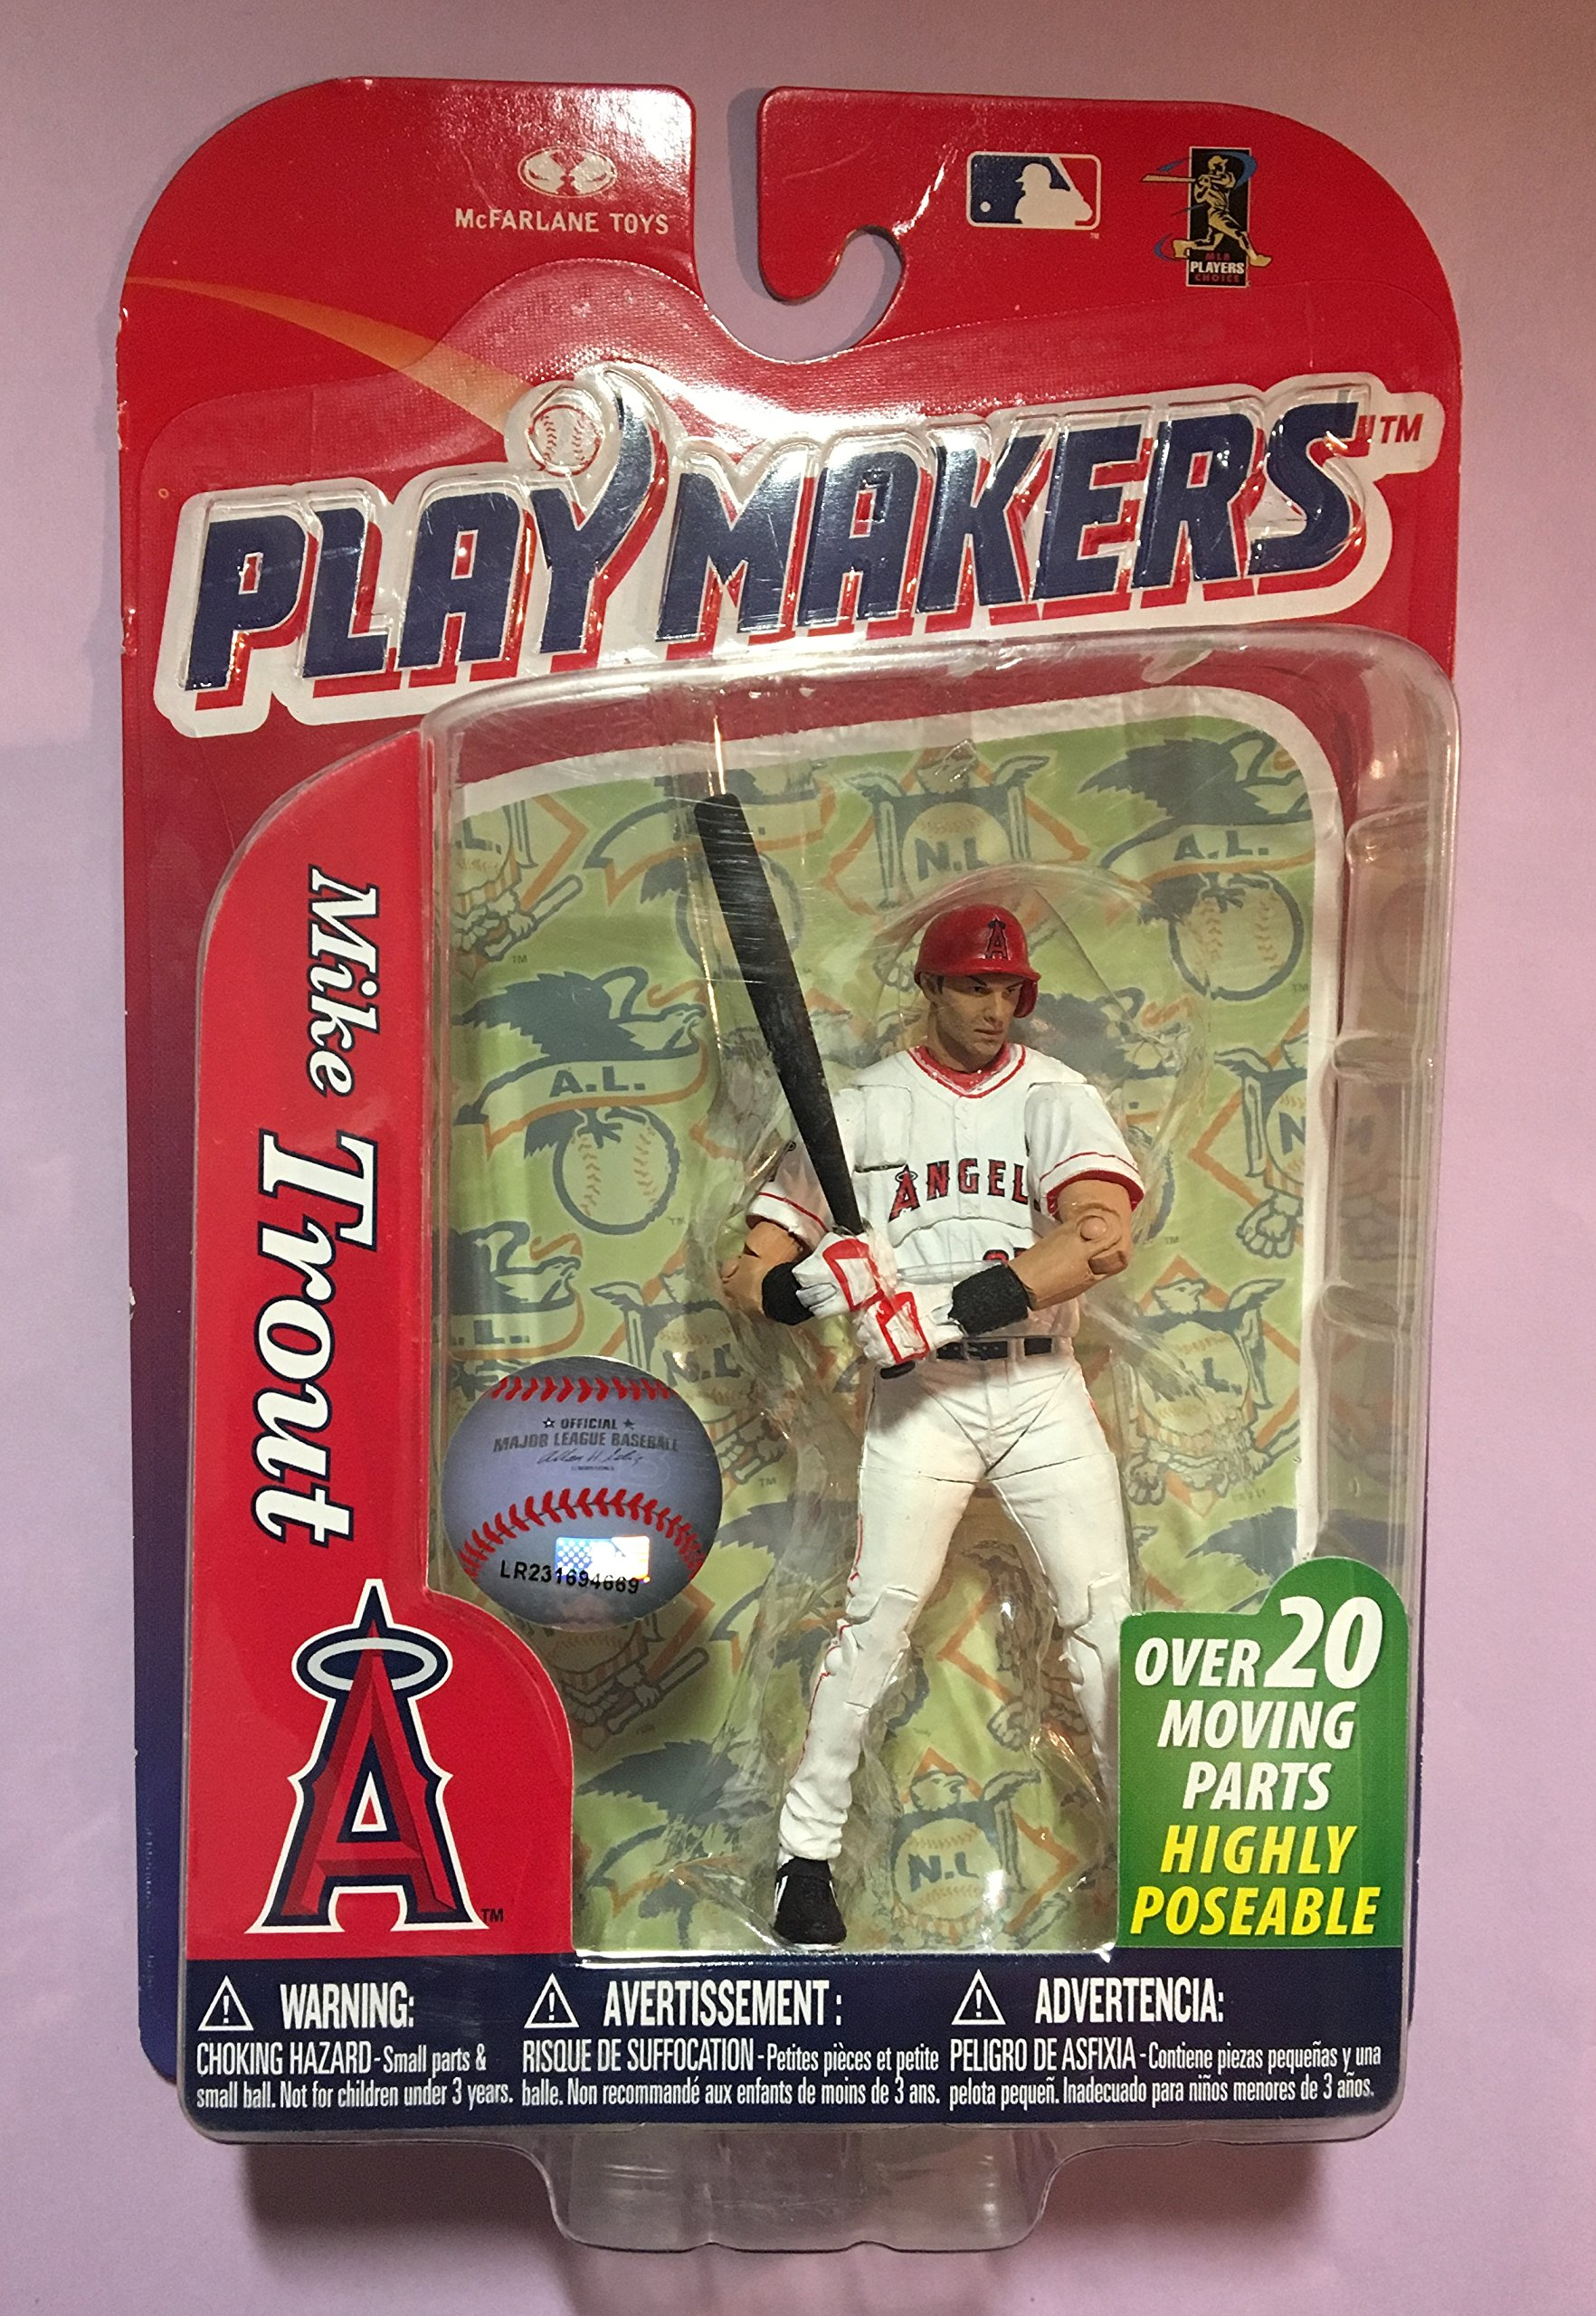 2013 McFarlane Baseball Playmakers Series 4#30 Mike Trout 4 inch Action Figure